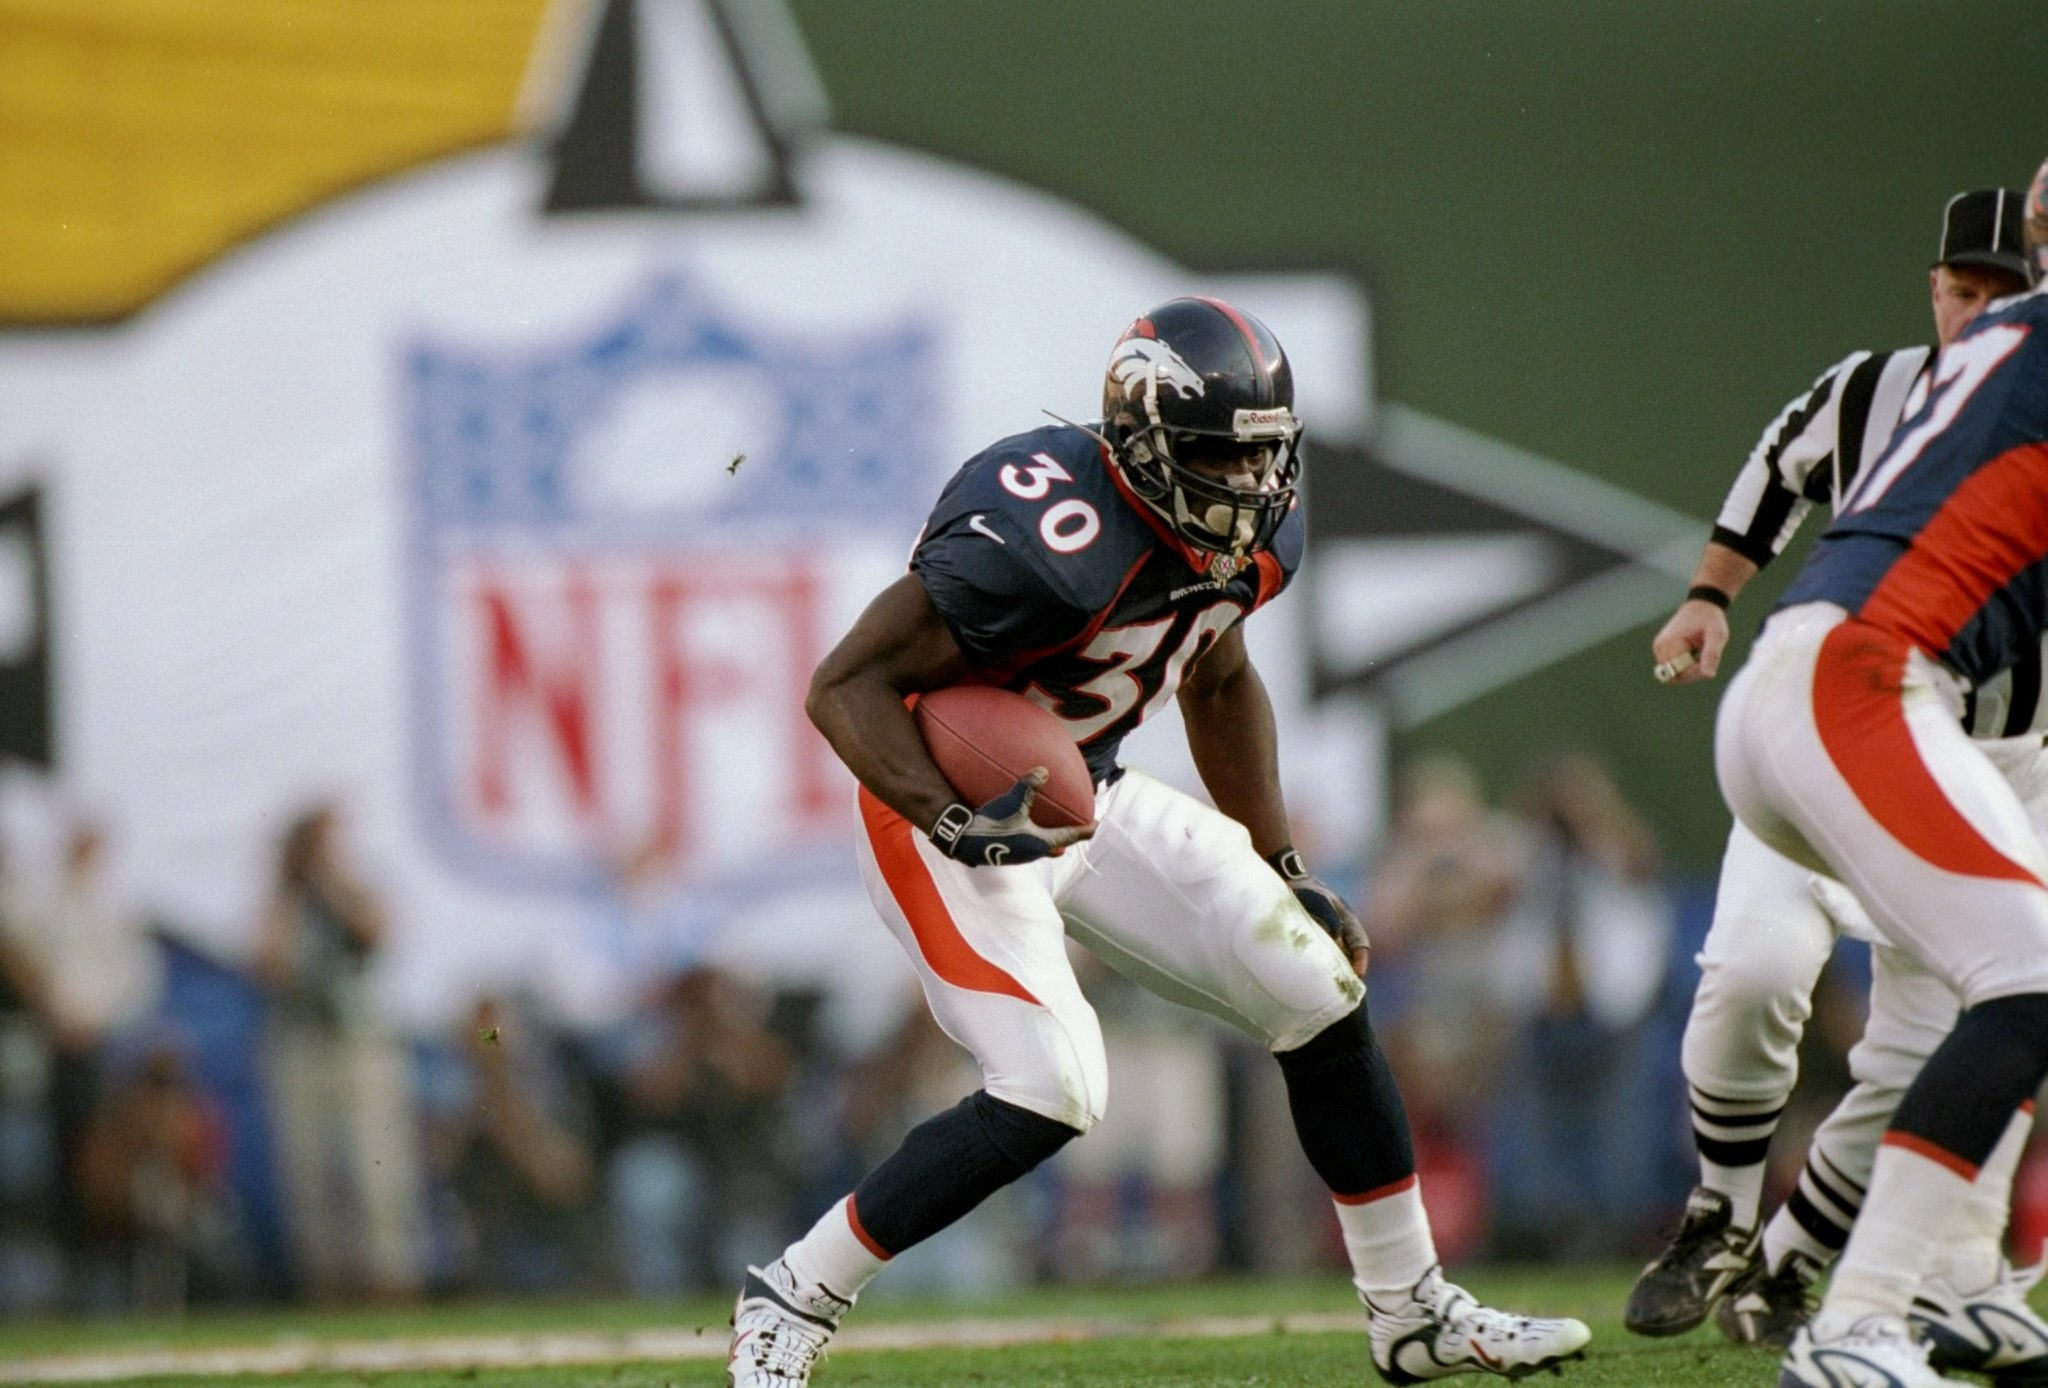 Terrell Davis was the last running back to win the Super Bowl MVP Award.